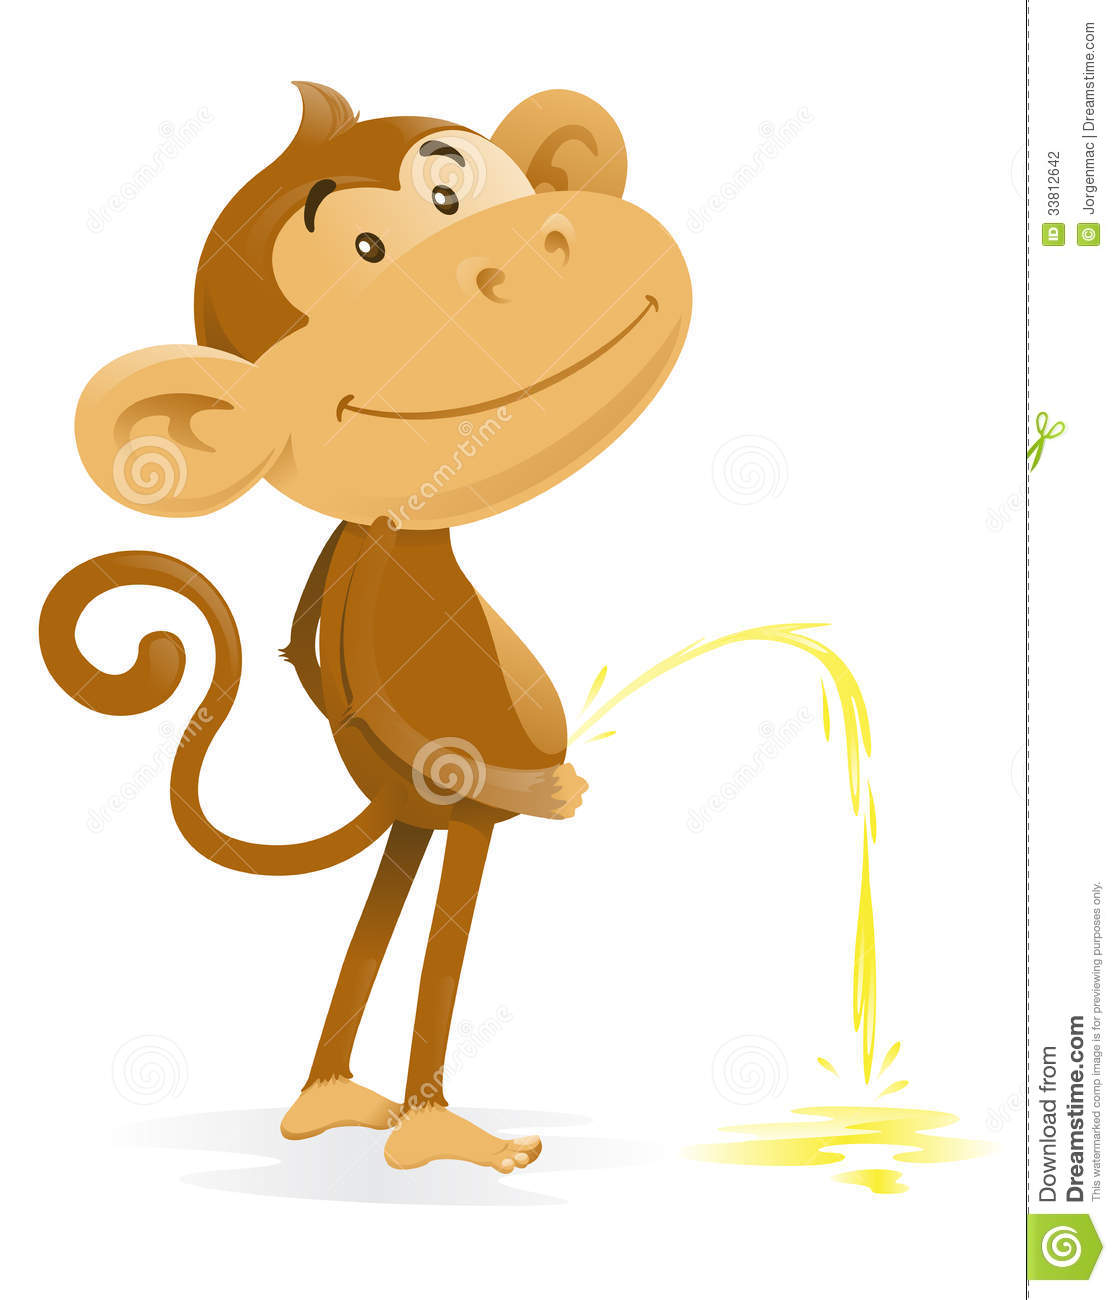 Stock Illustration Cartoon Brown Monkey Character Big Eyes Isolated White Background Image49725240 further Sabor additionally Folklore in addition Africa likewise Sheep. on baboon toy animal